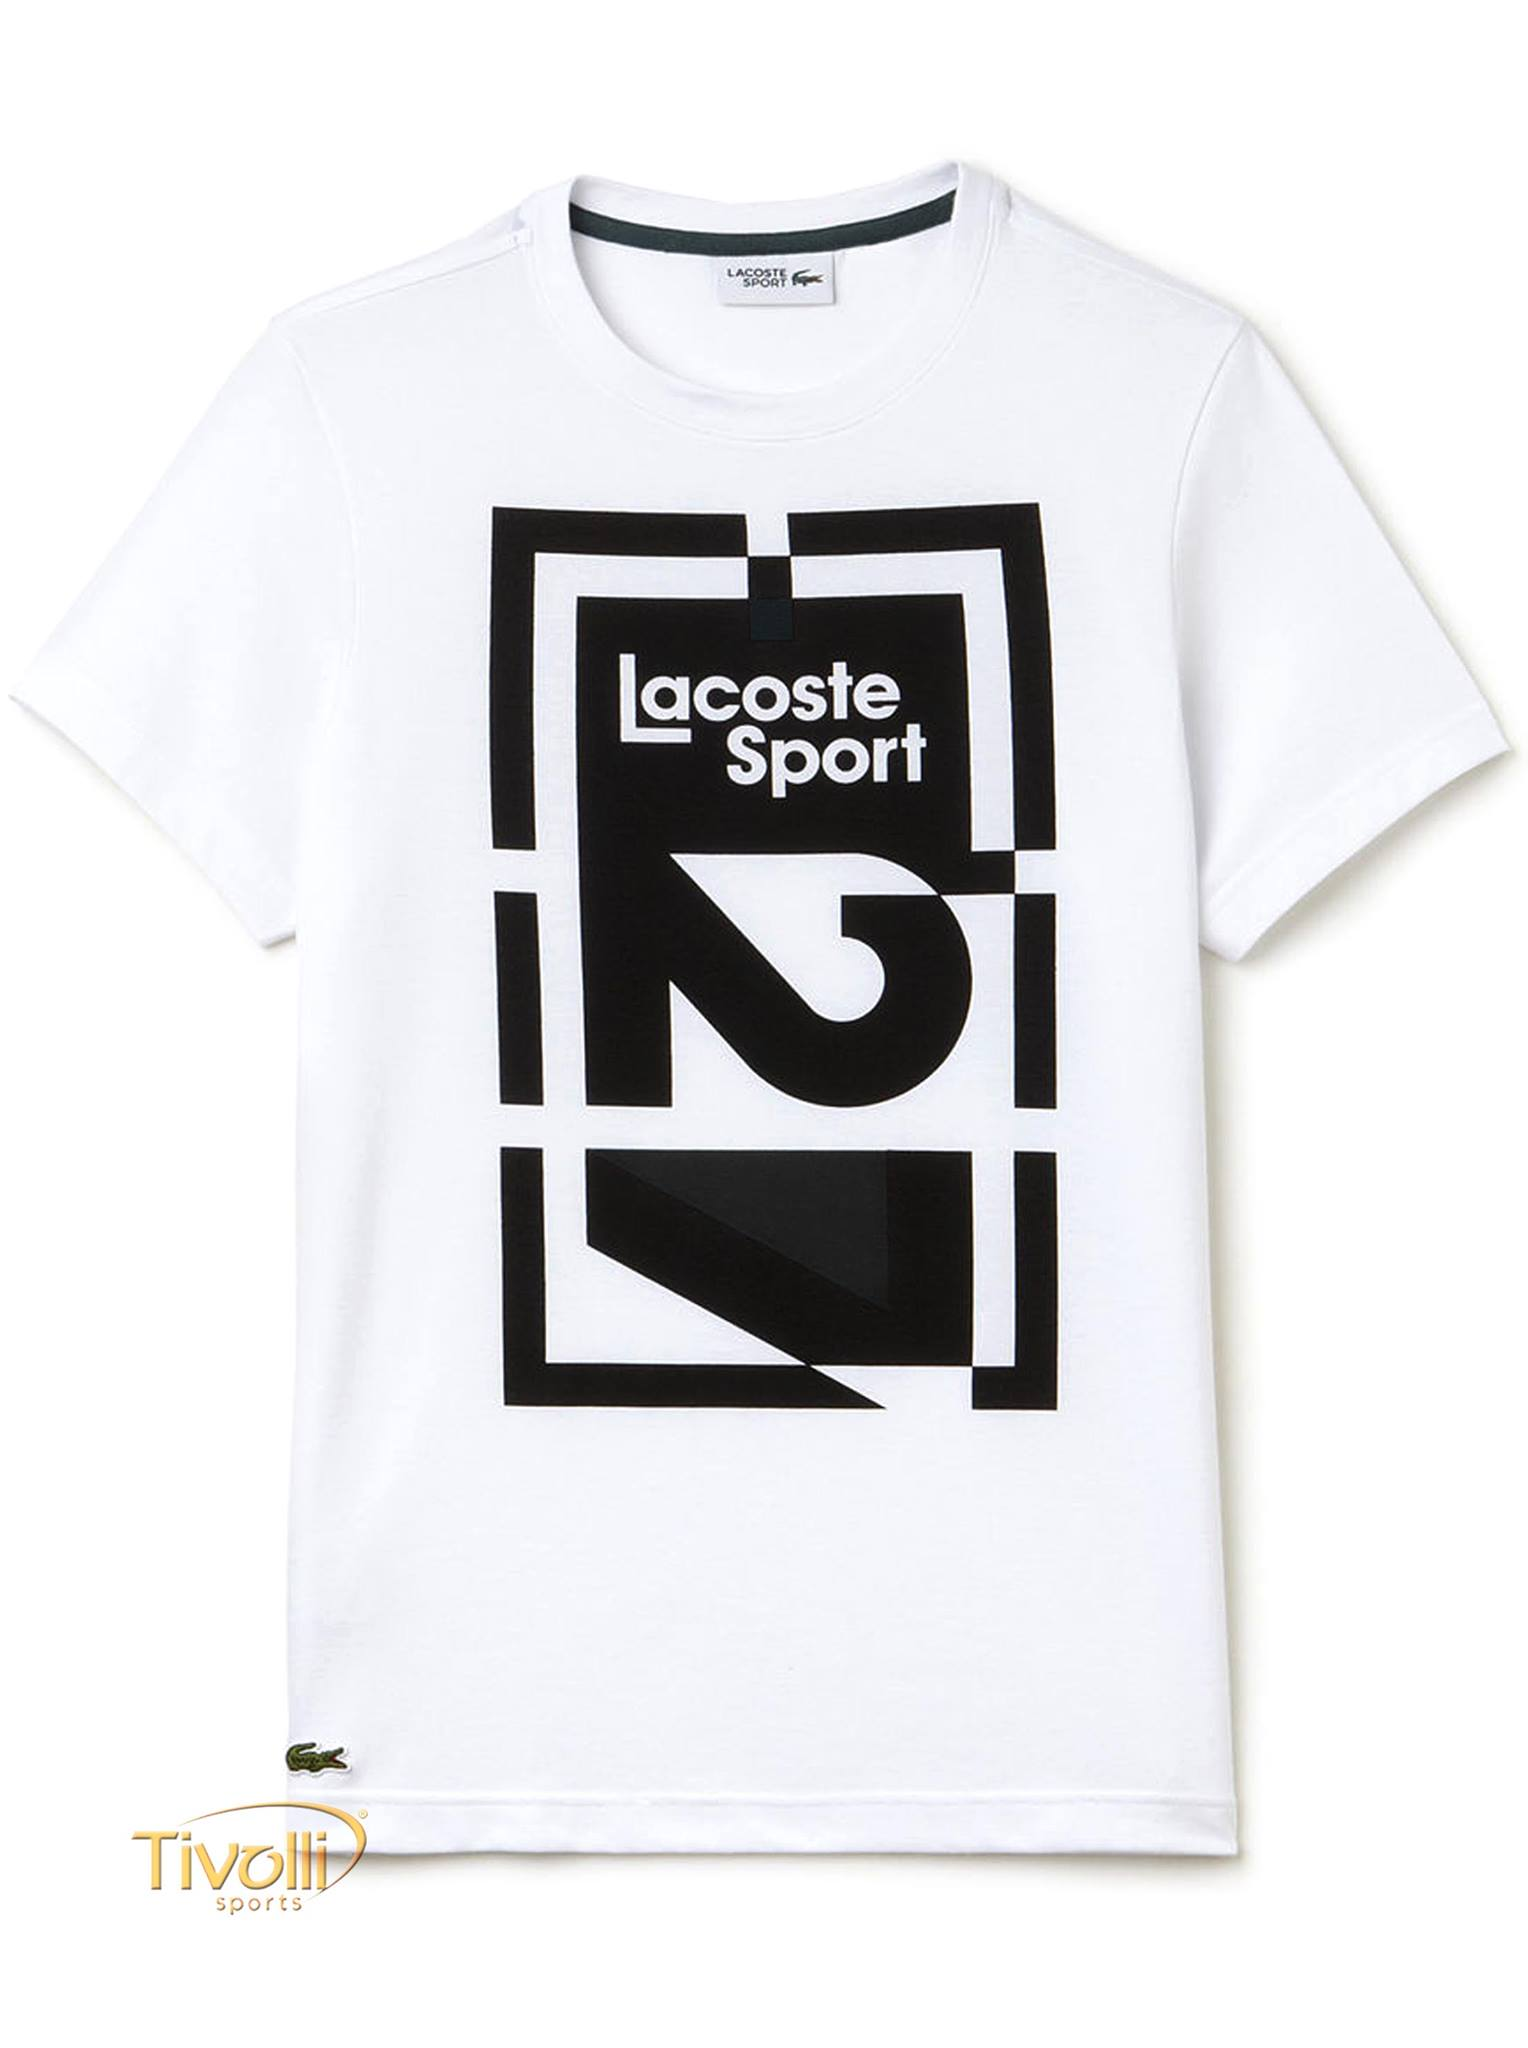 821cca64ae3 Raquete Mania   Camiseta Lacoste Sport Technical Jersey Abstract ...